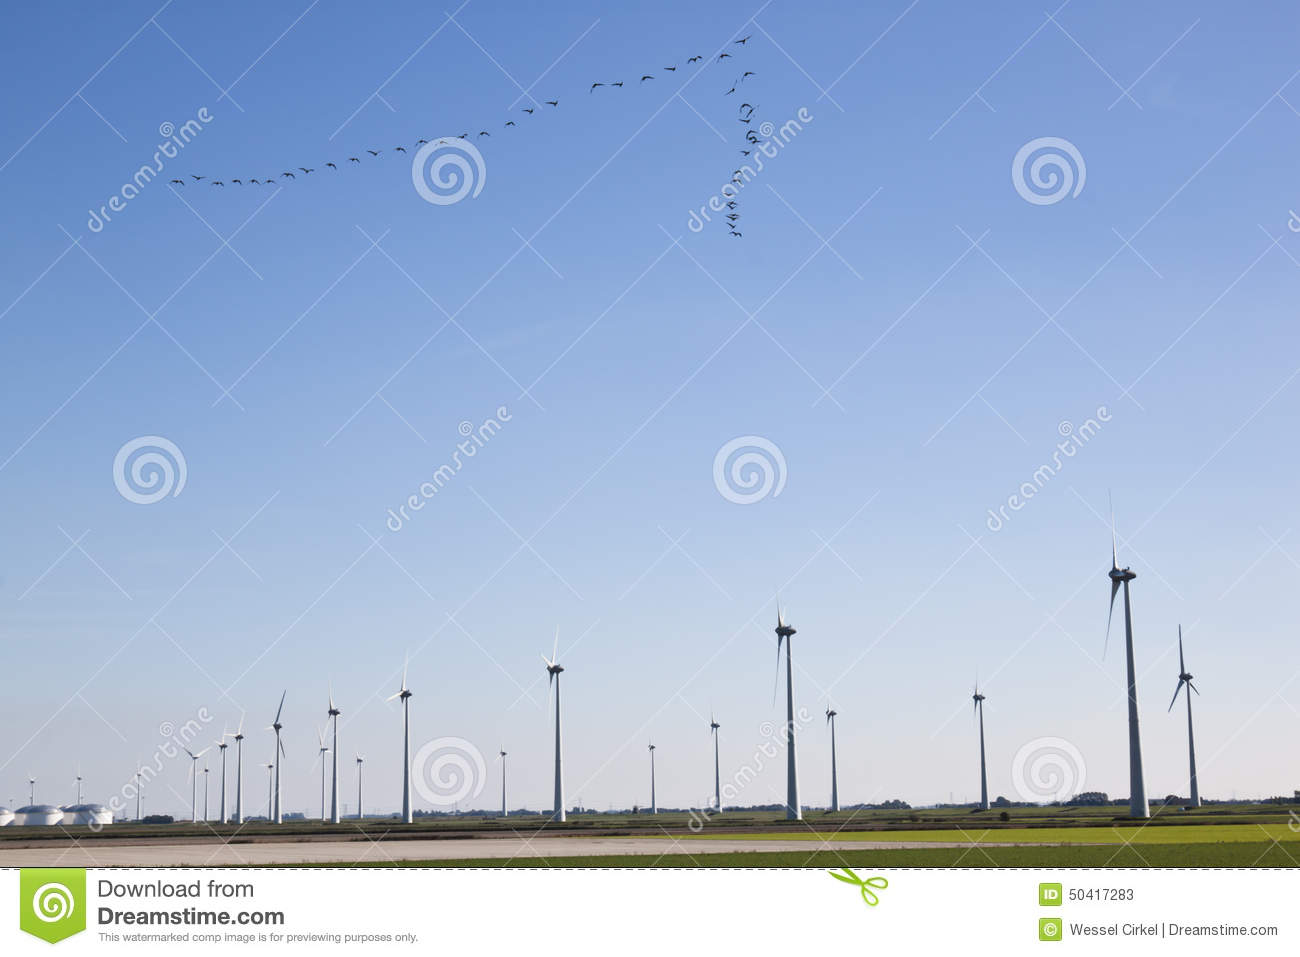 Flight of geese and windmills in dutch landscape